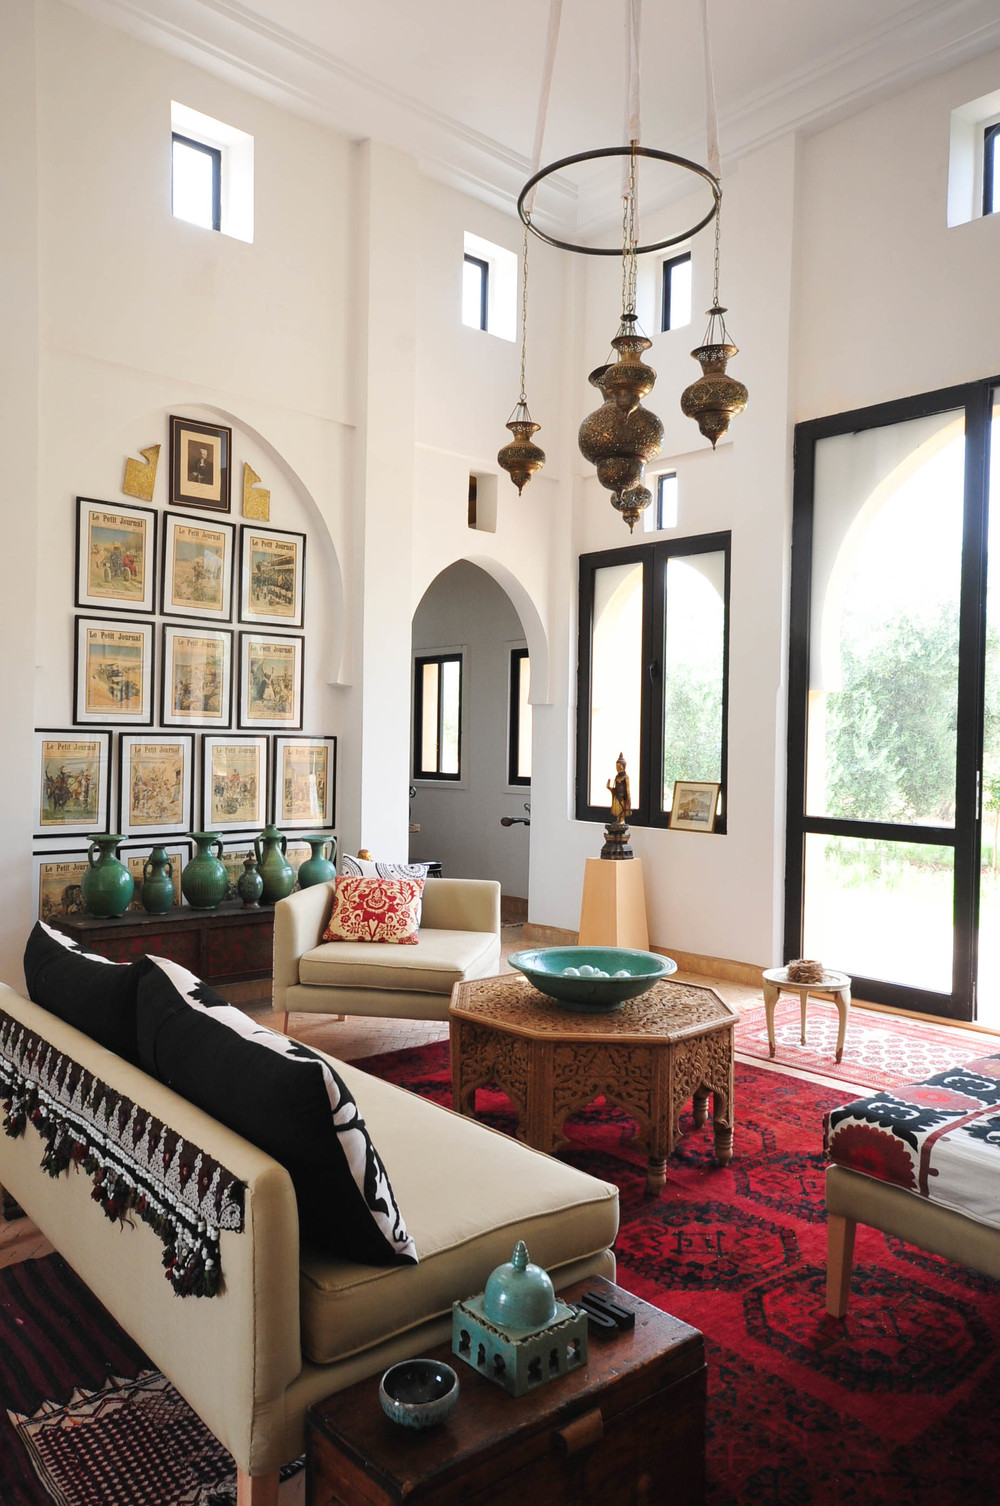 Peacock Pavilions boutique hotel in Marrakech, Morocco – Design by M. Montague - Salon, Medina Pavilion